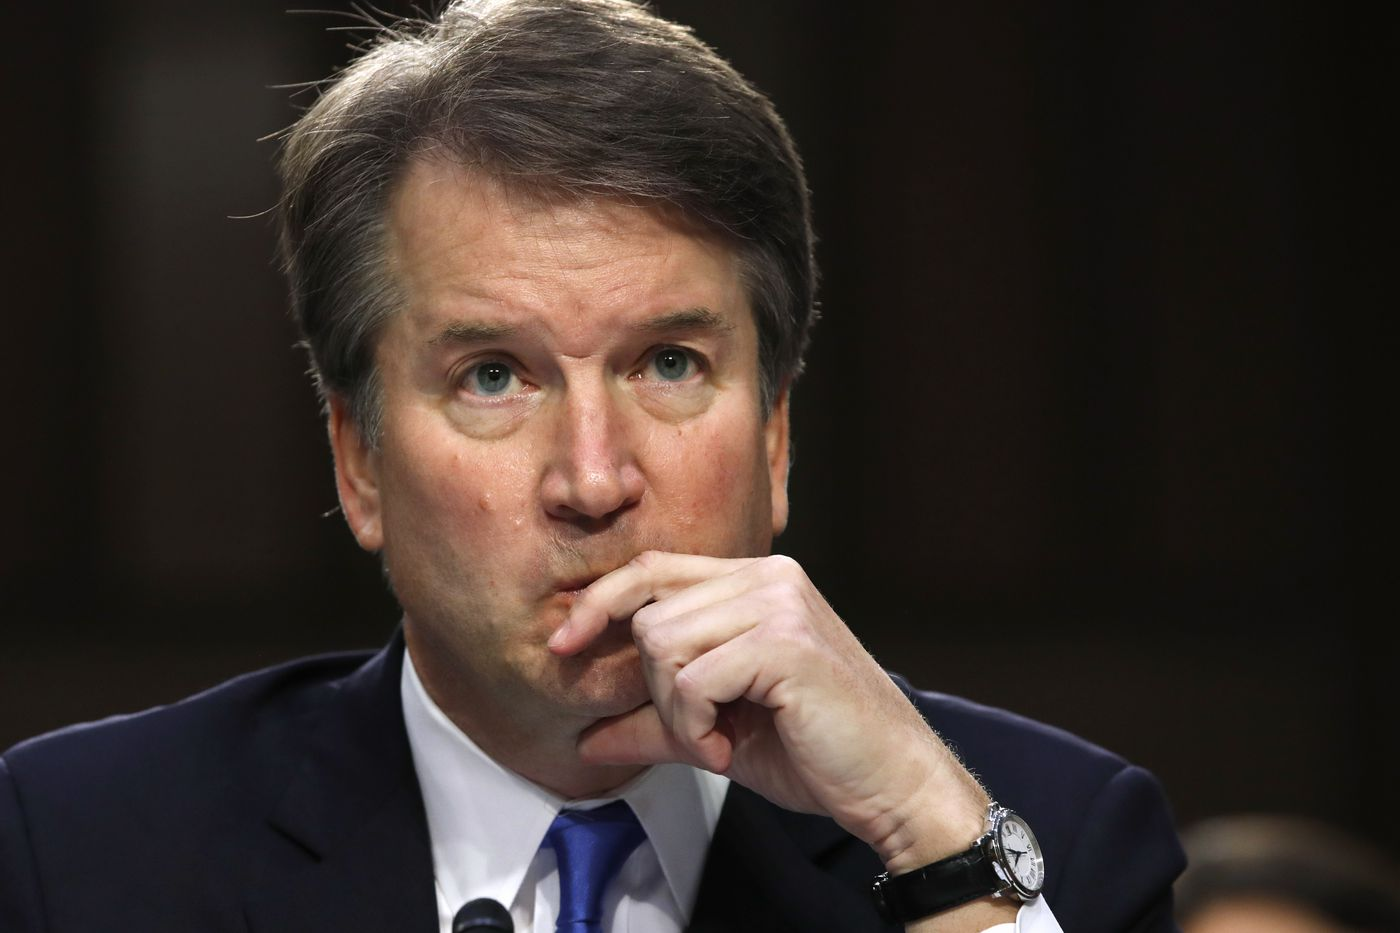 Arizona prosecutor Rachel Mitchell is GOP choice to question Kavanaugh and Ford